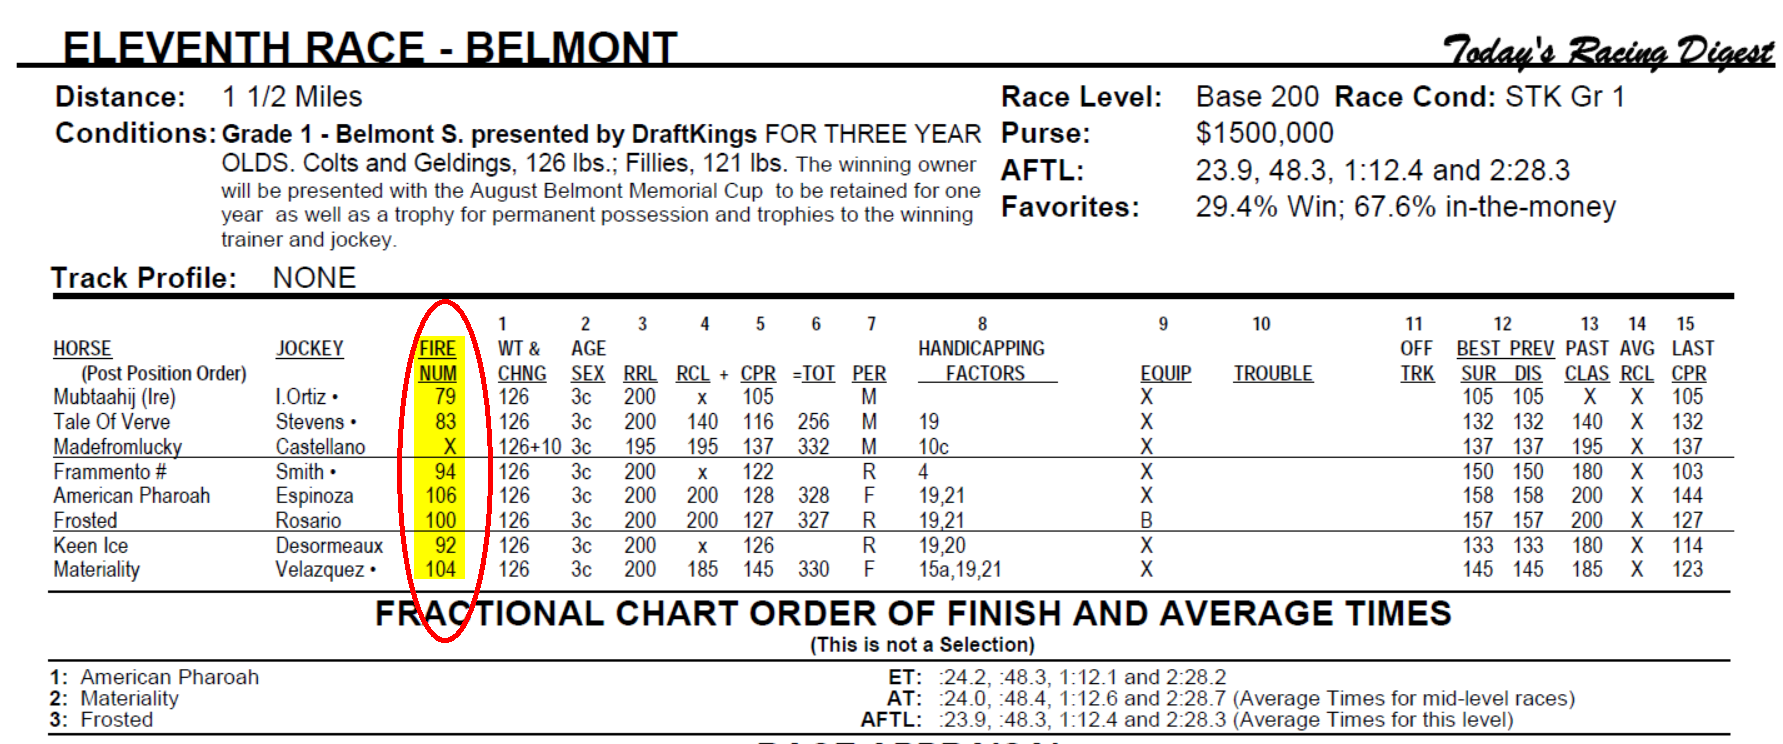 Speed and Performance Figures - Today's Racing Digest